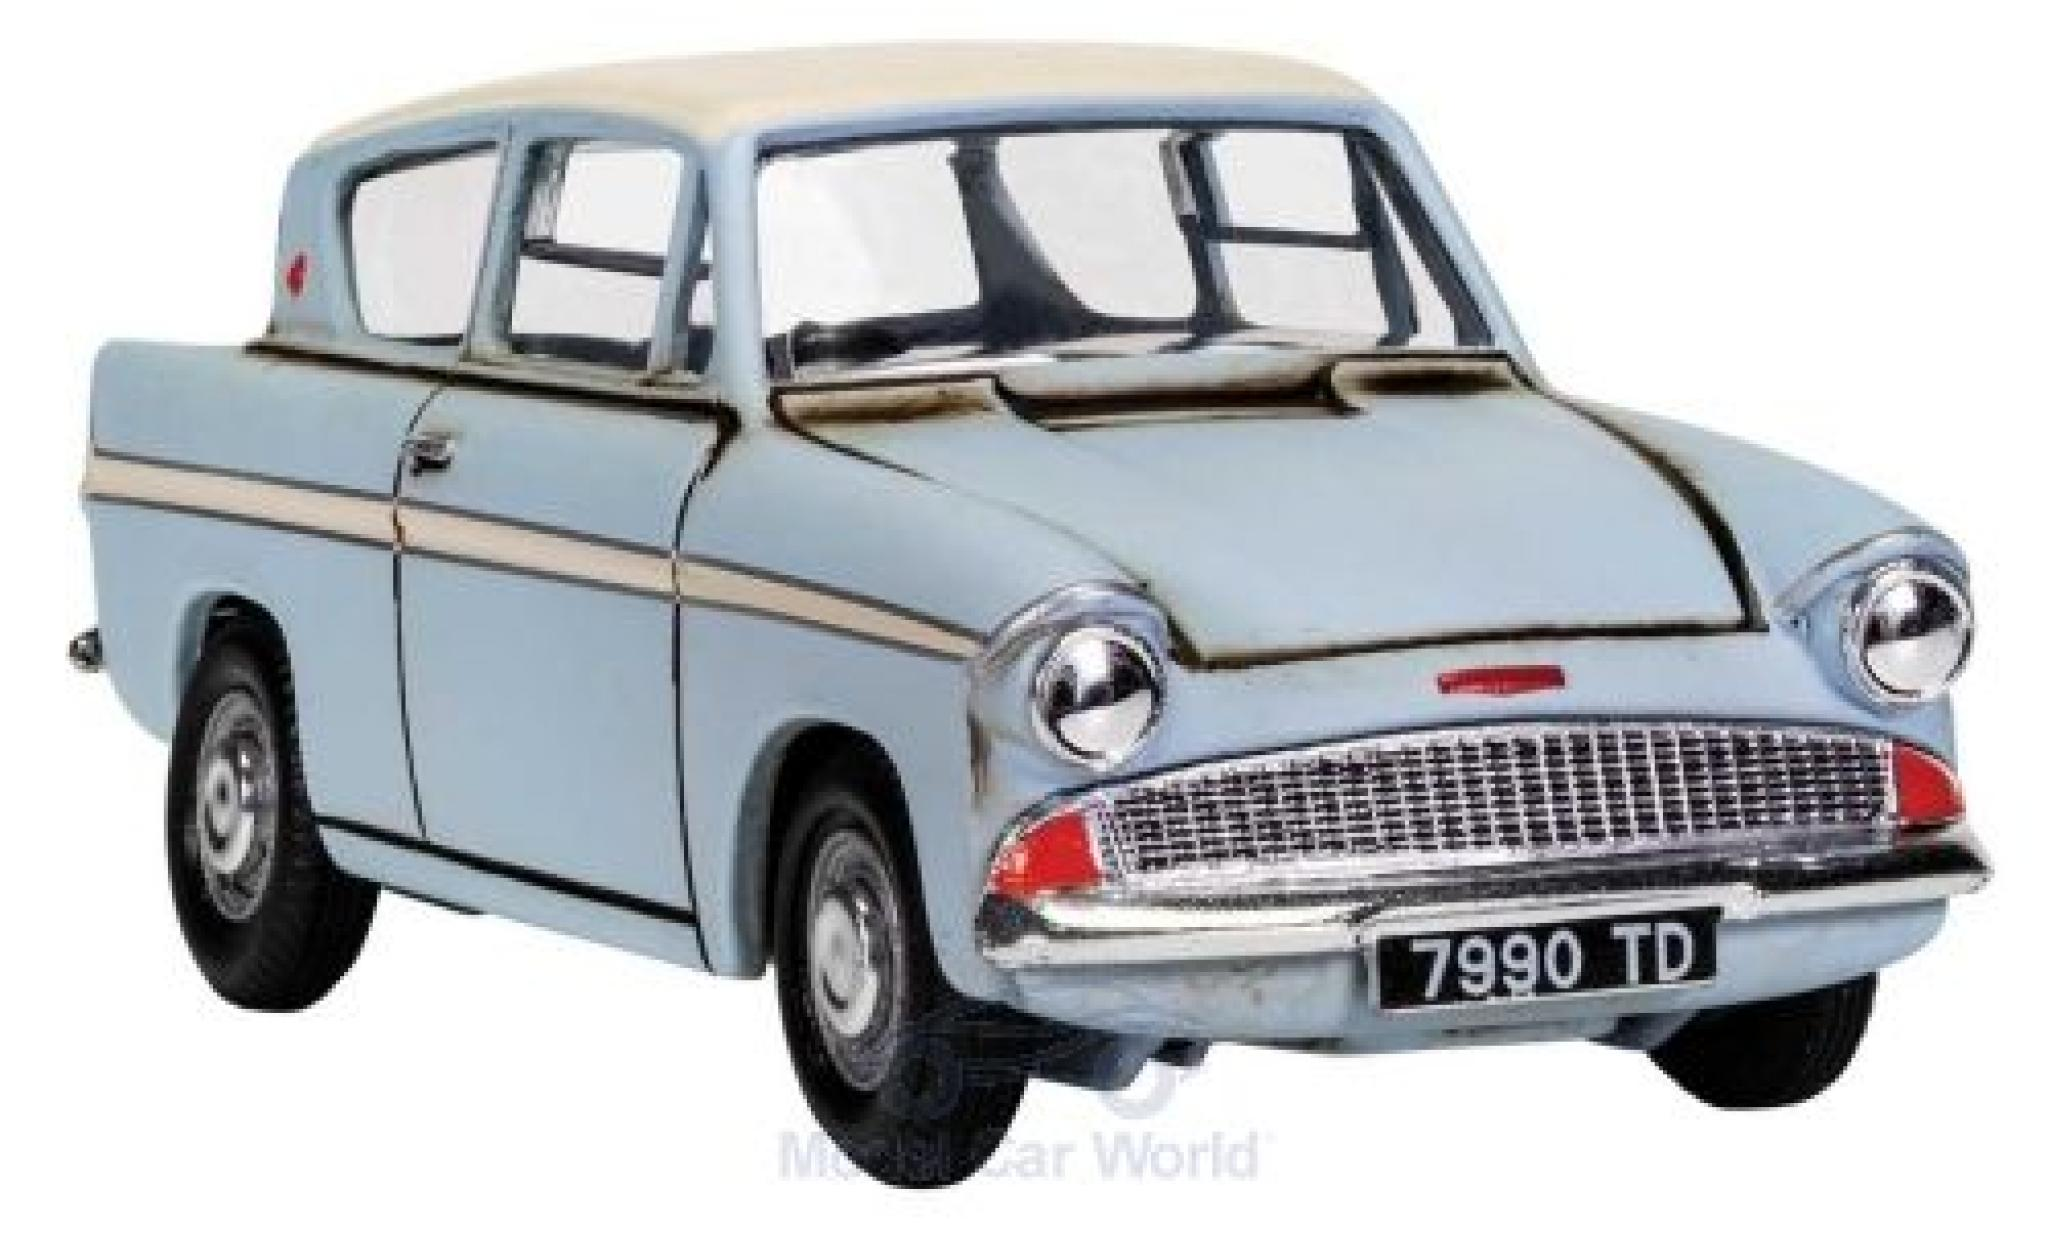 Ford Anglia 1/43 Corgi bleue/blanche Harry Potter with Harry and Ron figures